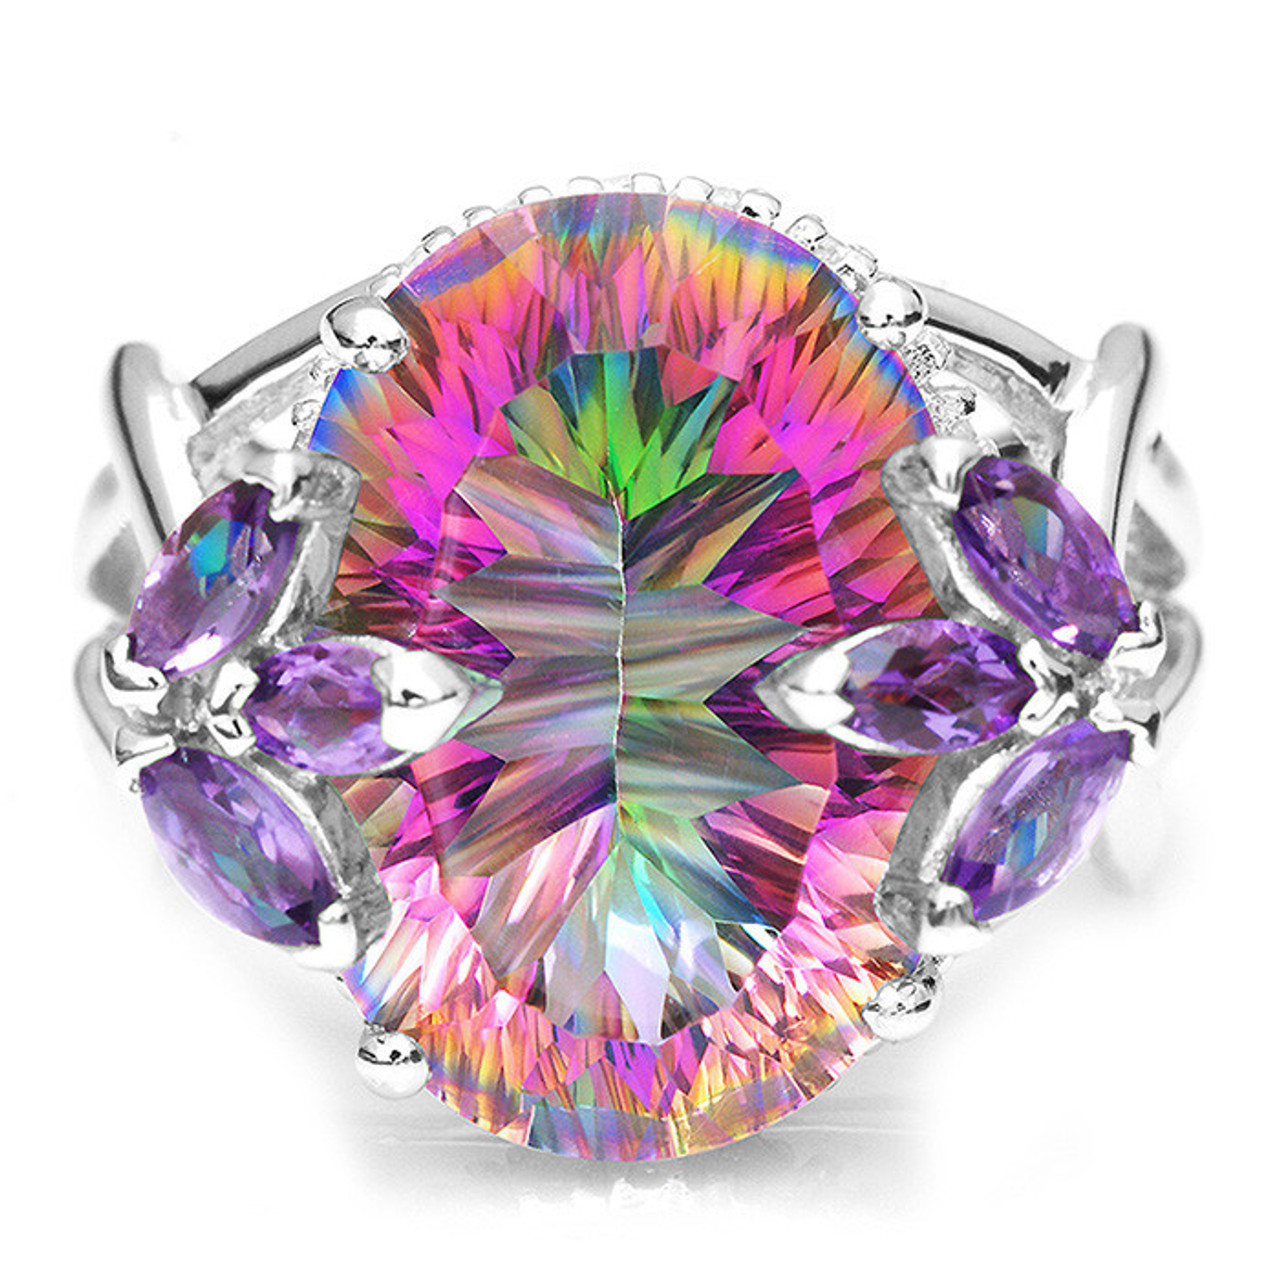 Genuine Oval 1.00 Cts Mystic Topaz Four Stone 925 Sterling Silver Ring